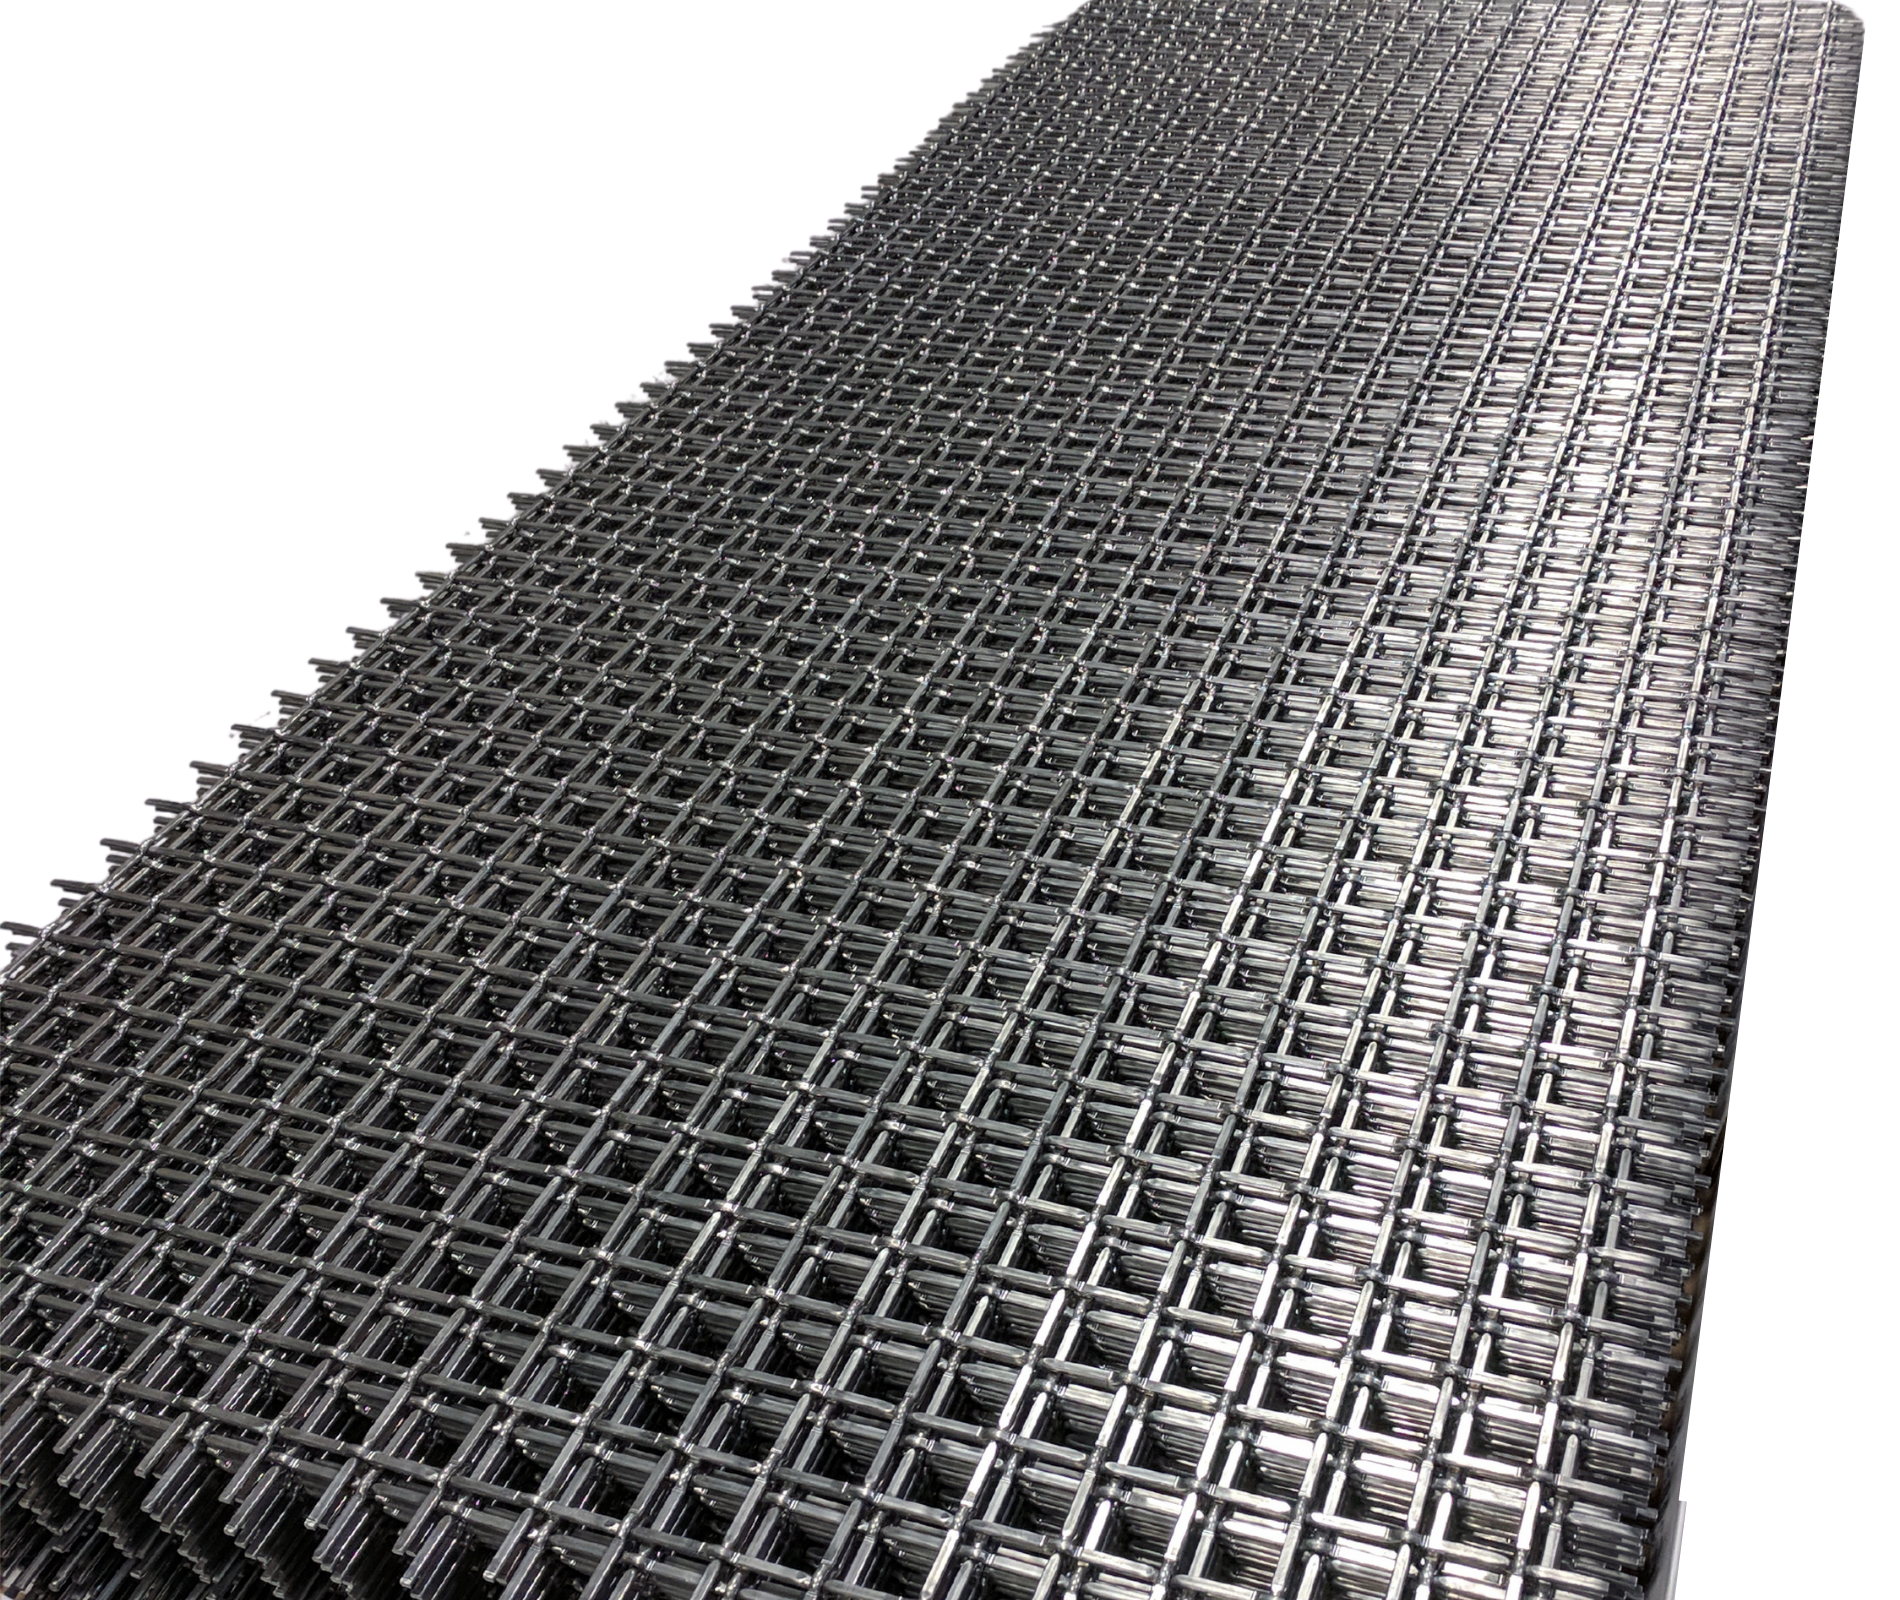 Woven Wire Mesh Stack-2